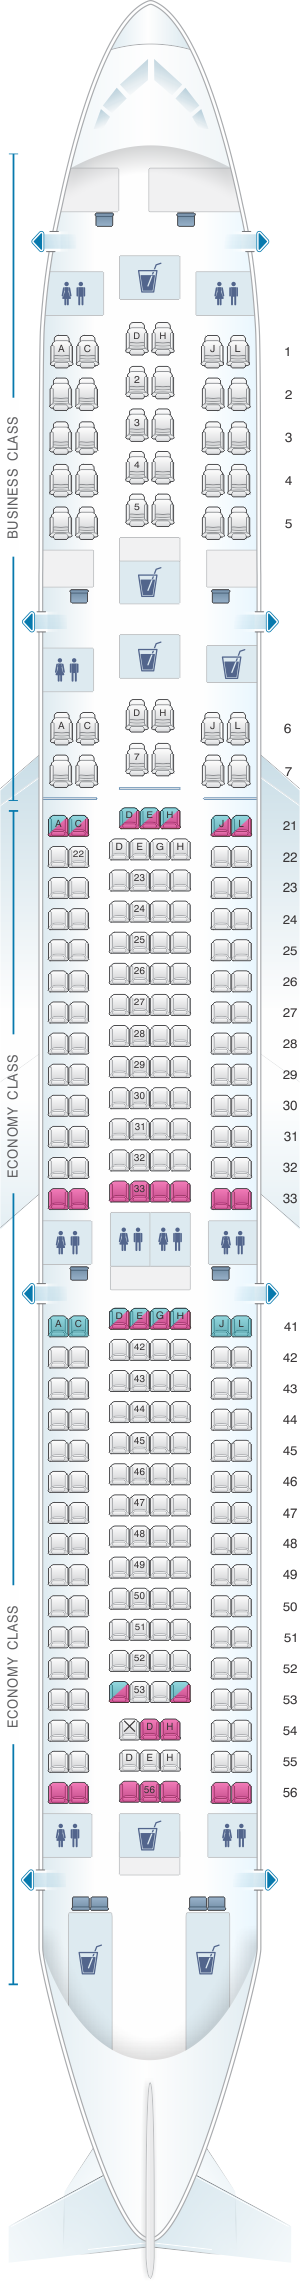 Seat map for Finnair Airbus A340 300 269PAX